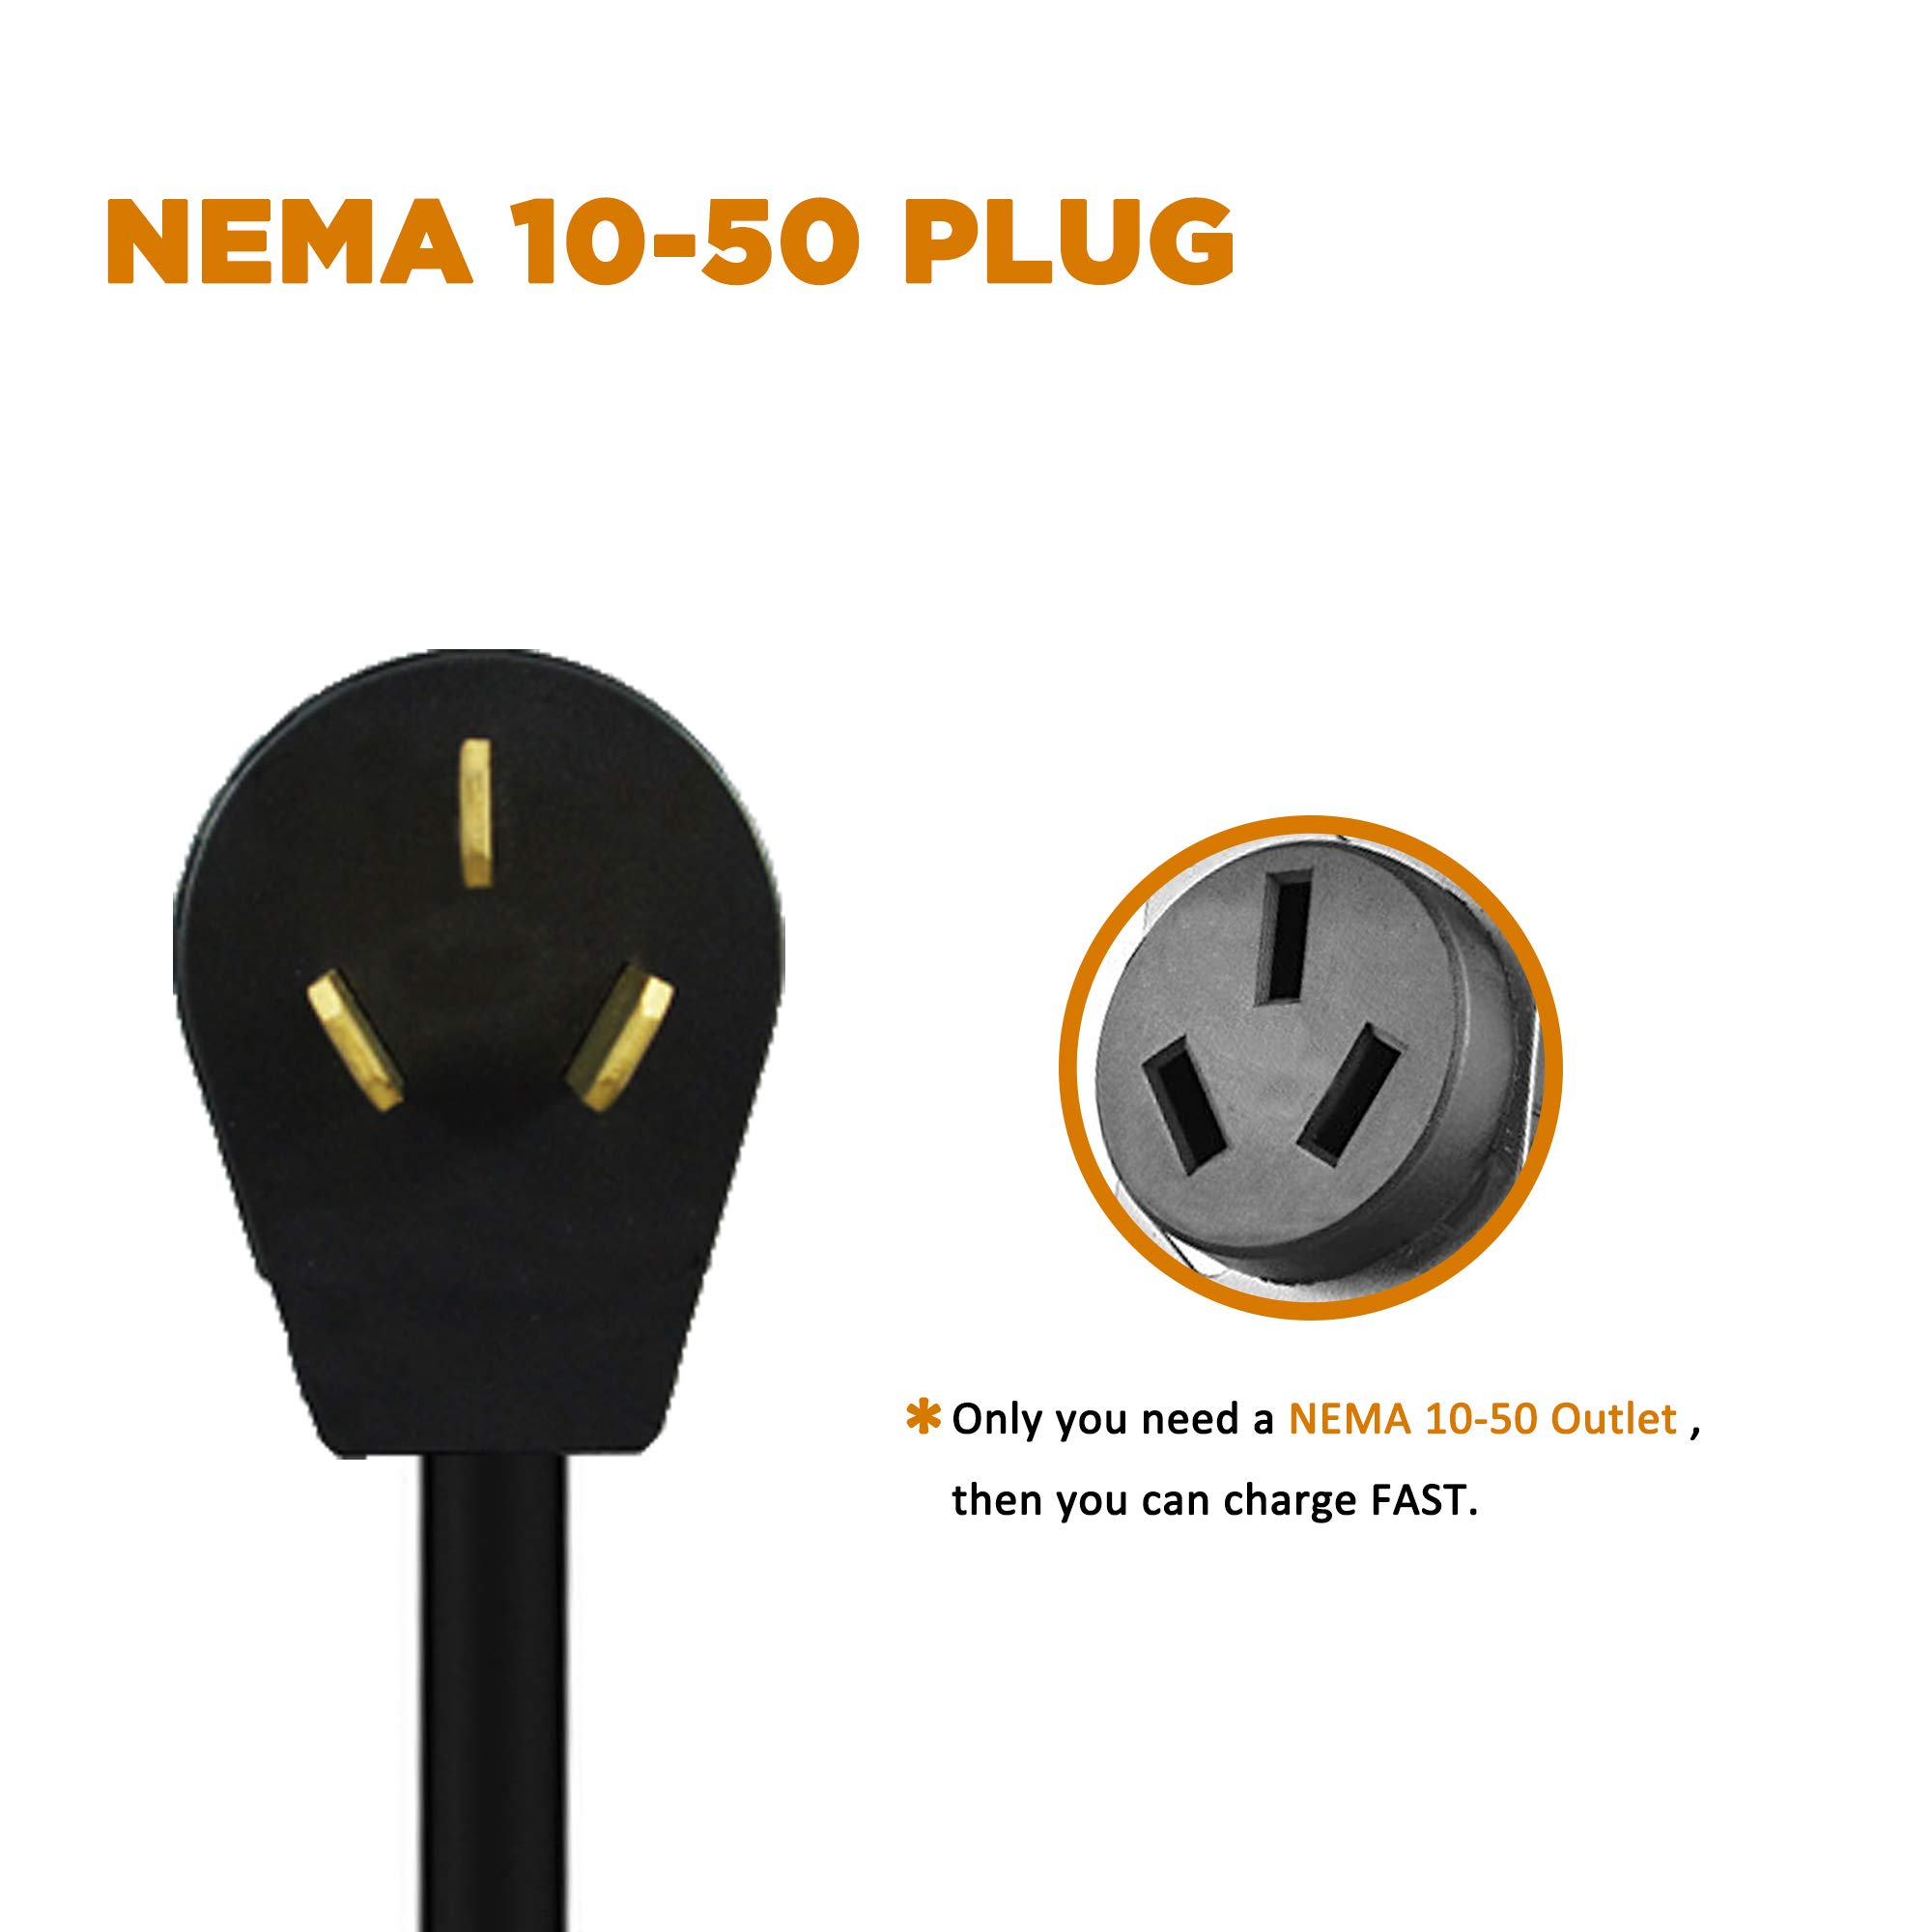 MUSTART Level 2 Portable EV Charger (240 Volt, 25ft Cable, 40 Amp), Electric Vehicle Charger Plug-in EV Charging Station with NEMA 10-50P by MUSTART (Image #5)